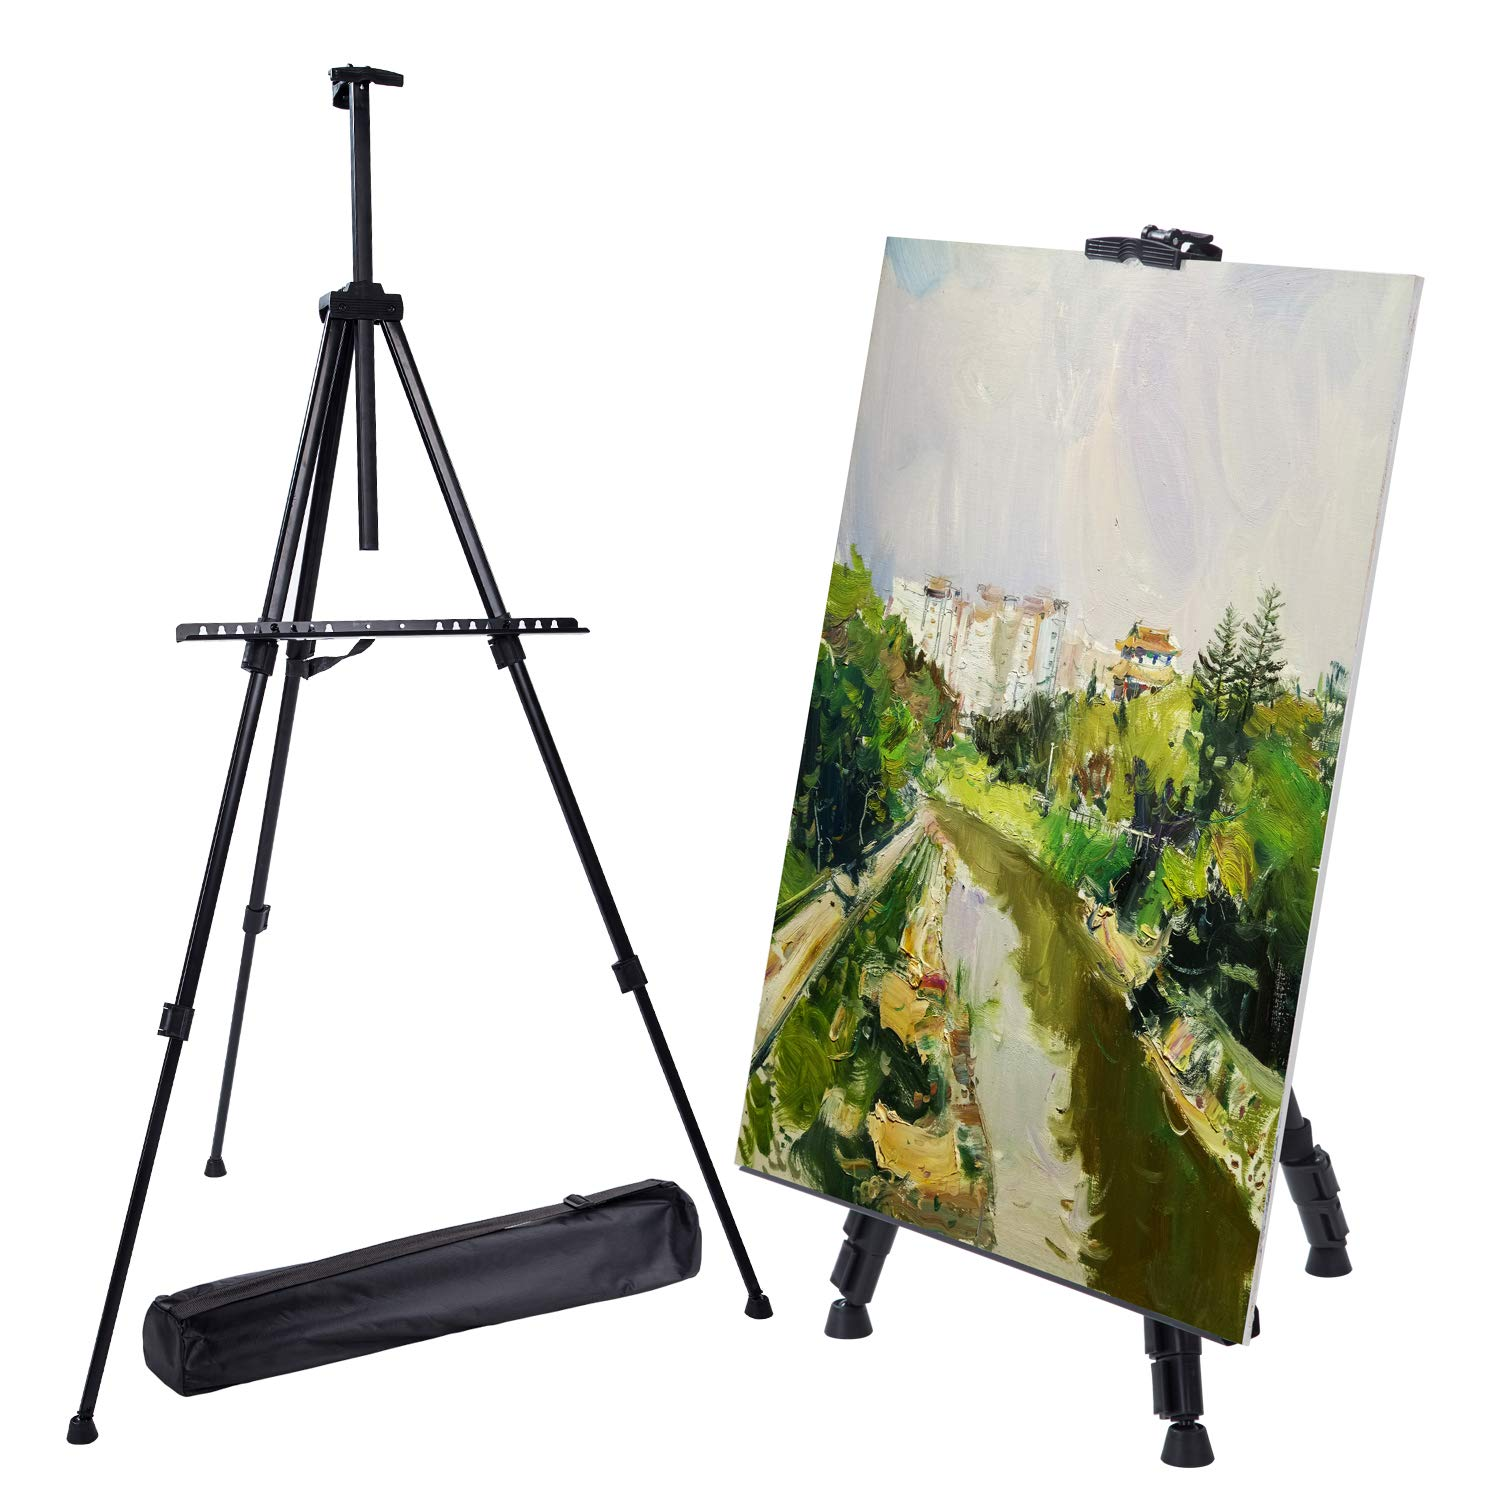 """Easel Stand, Metal Adjustable Display Tripod Floor Easel Extend from 20.5"""" to 67"""" with Portable Bag for Painting Poster Whiteboard in Wedding School Office Black"""